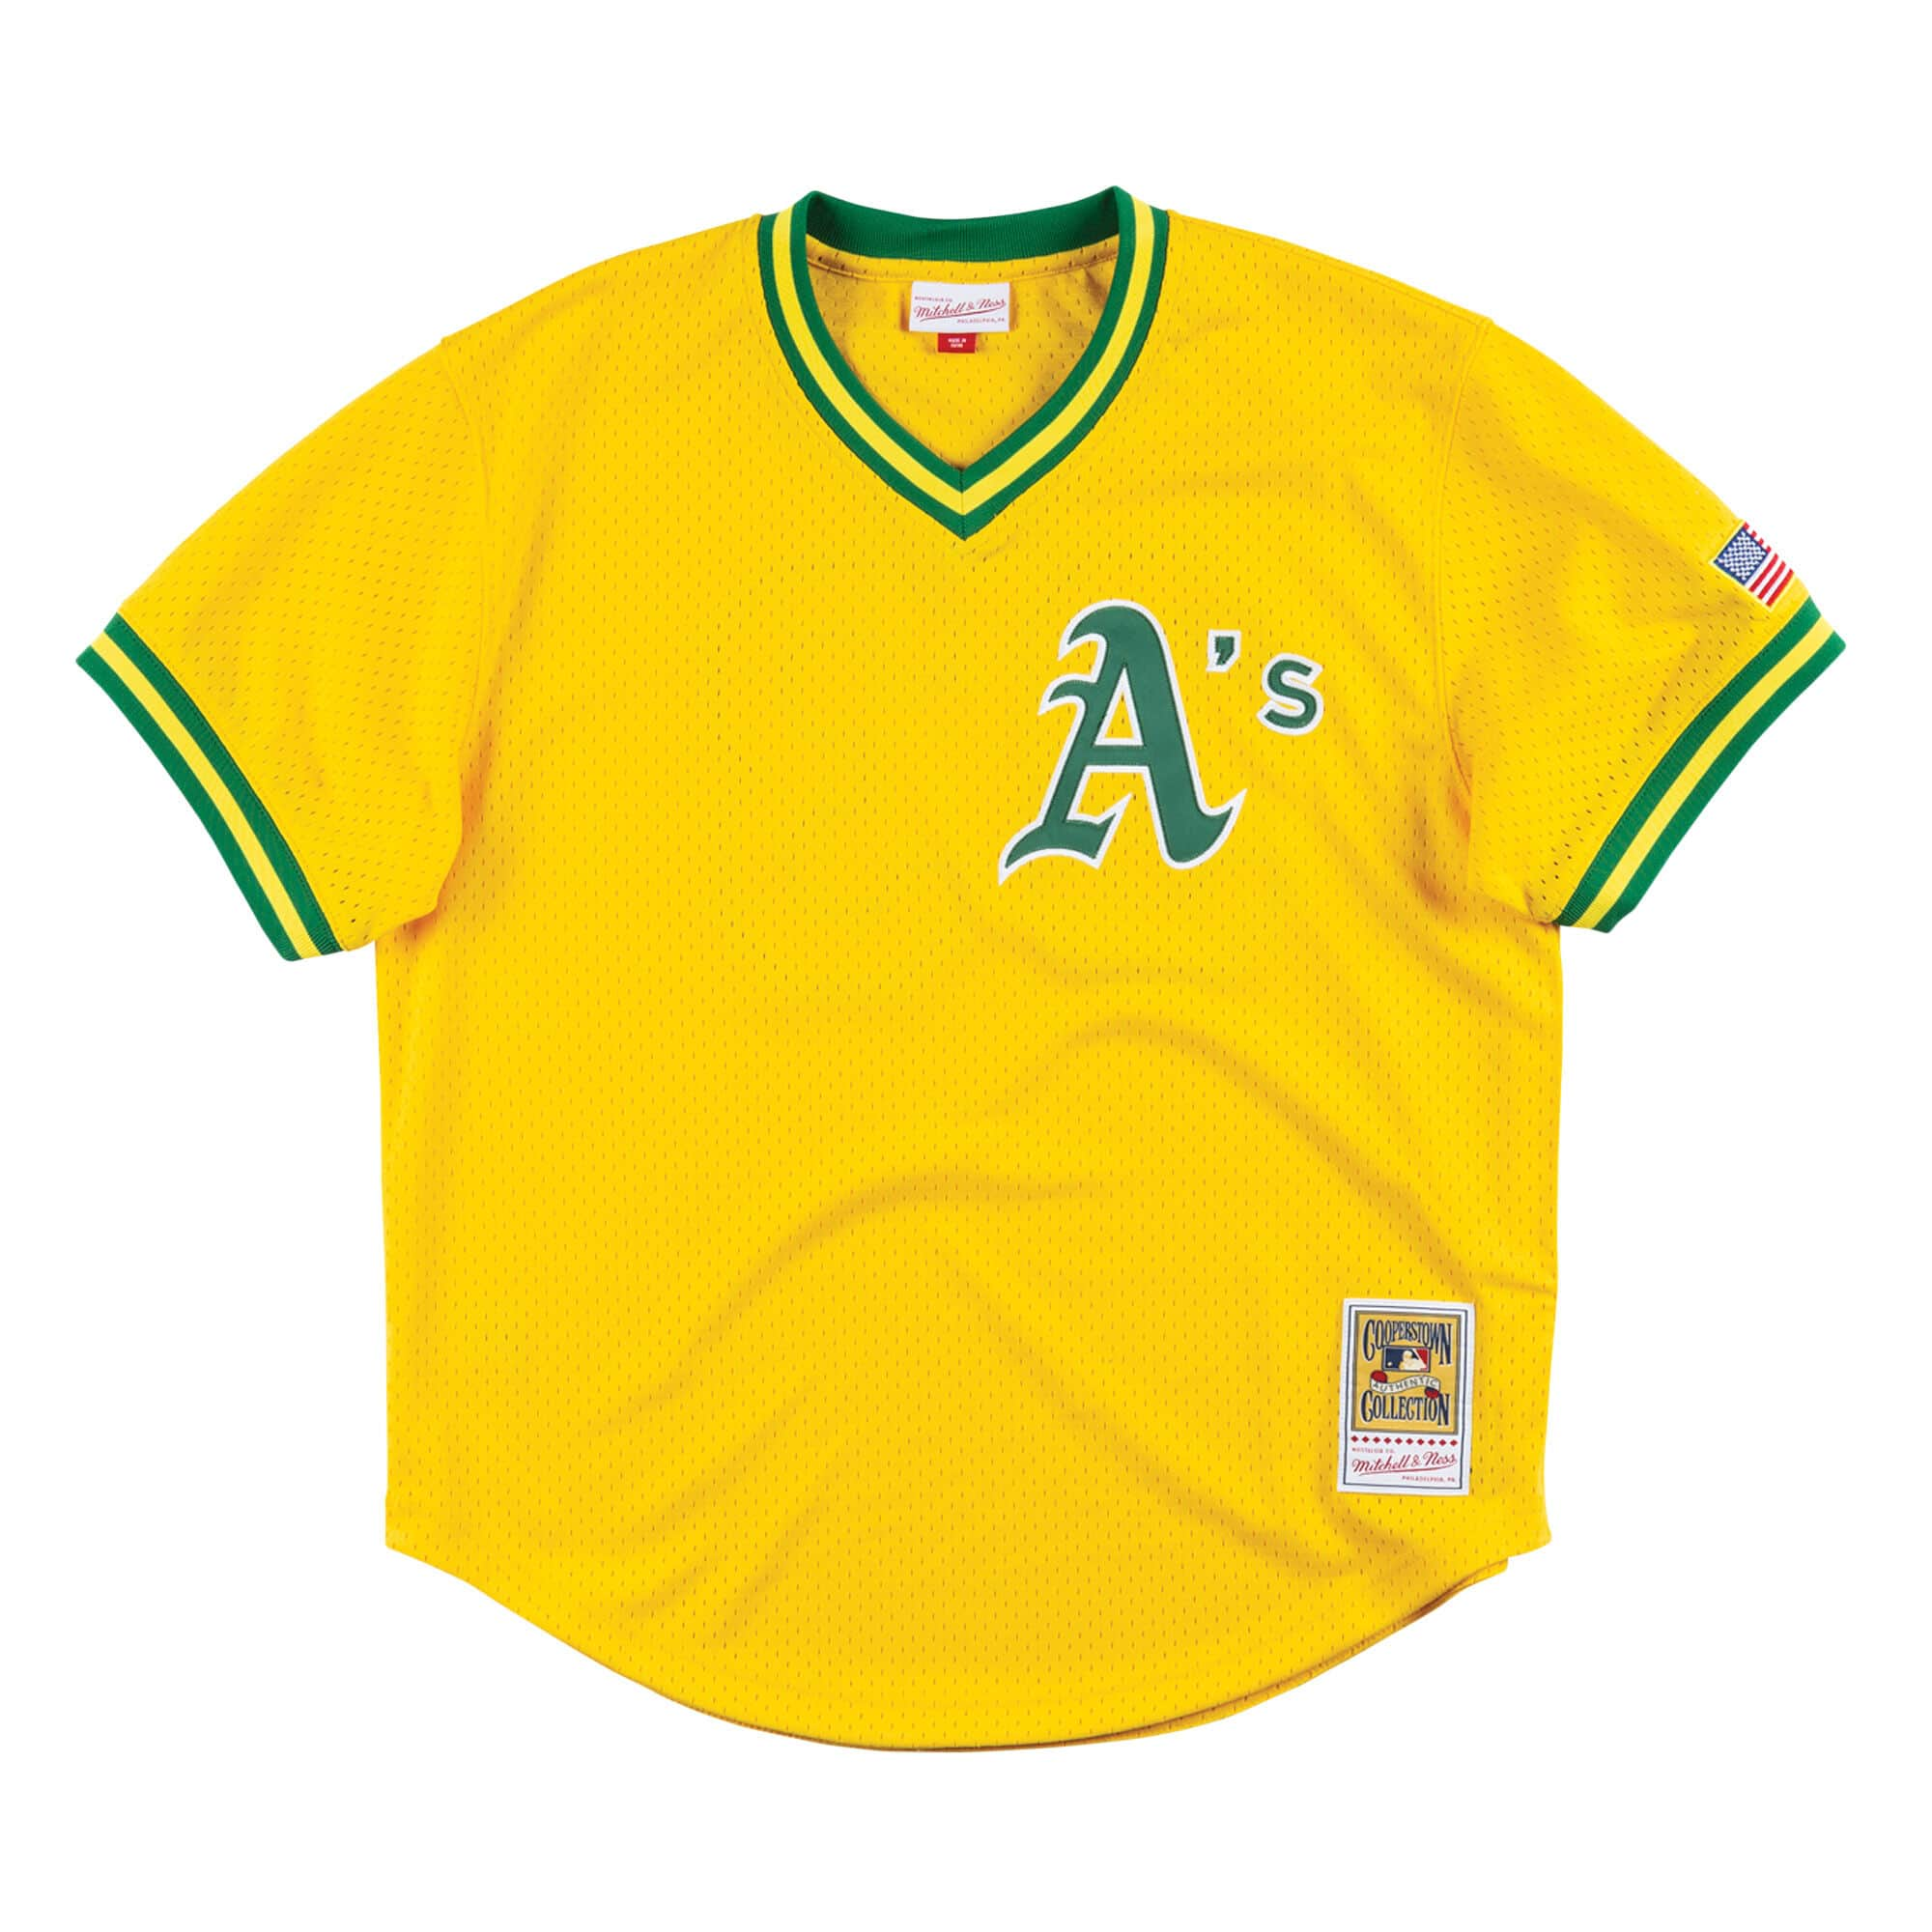 Authentic Mesh BP Jersey Oakland Athletics 1990 Jose Canseco